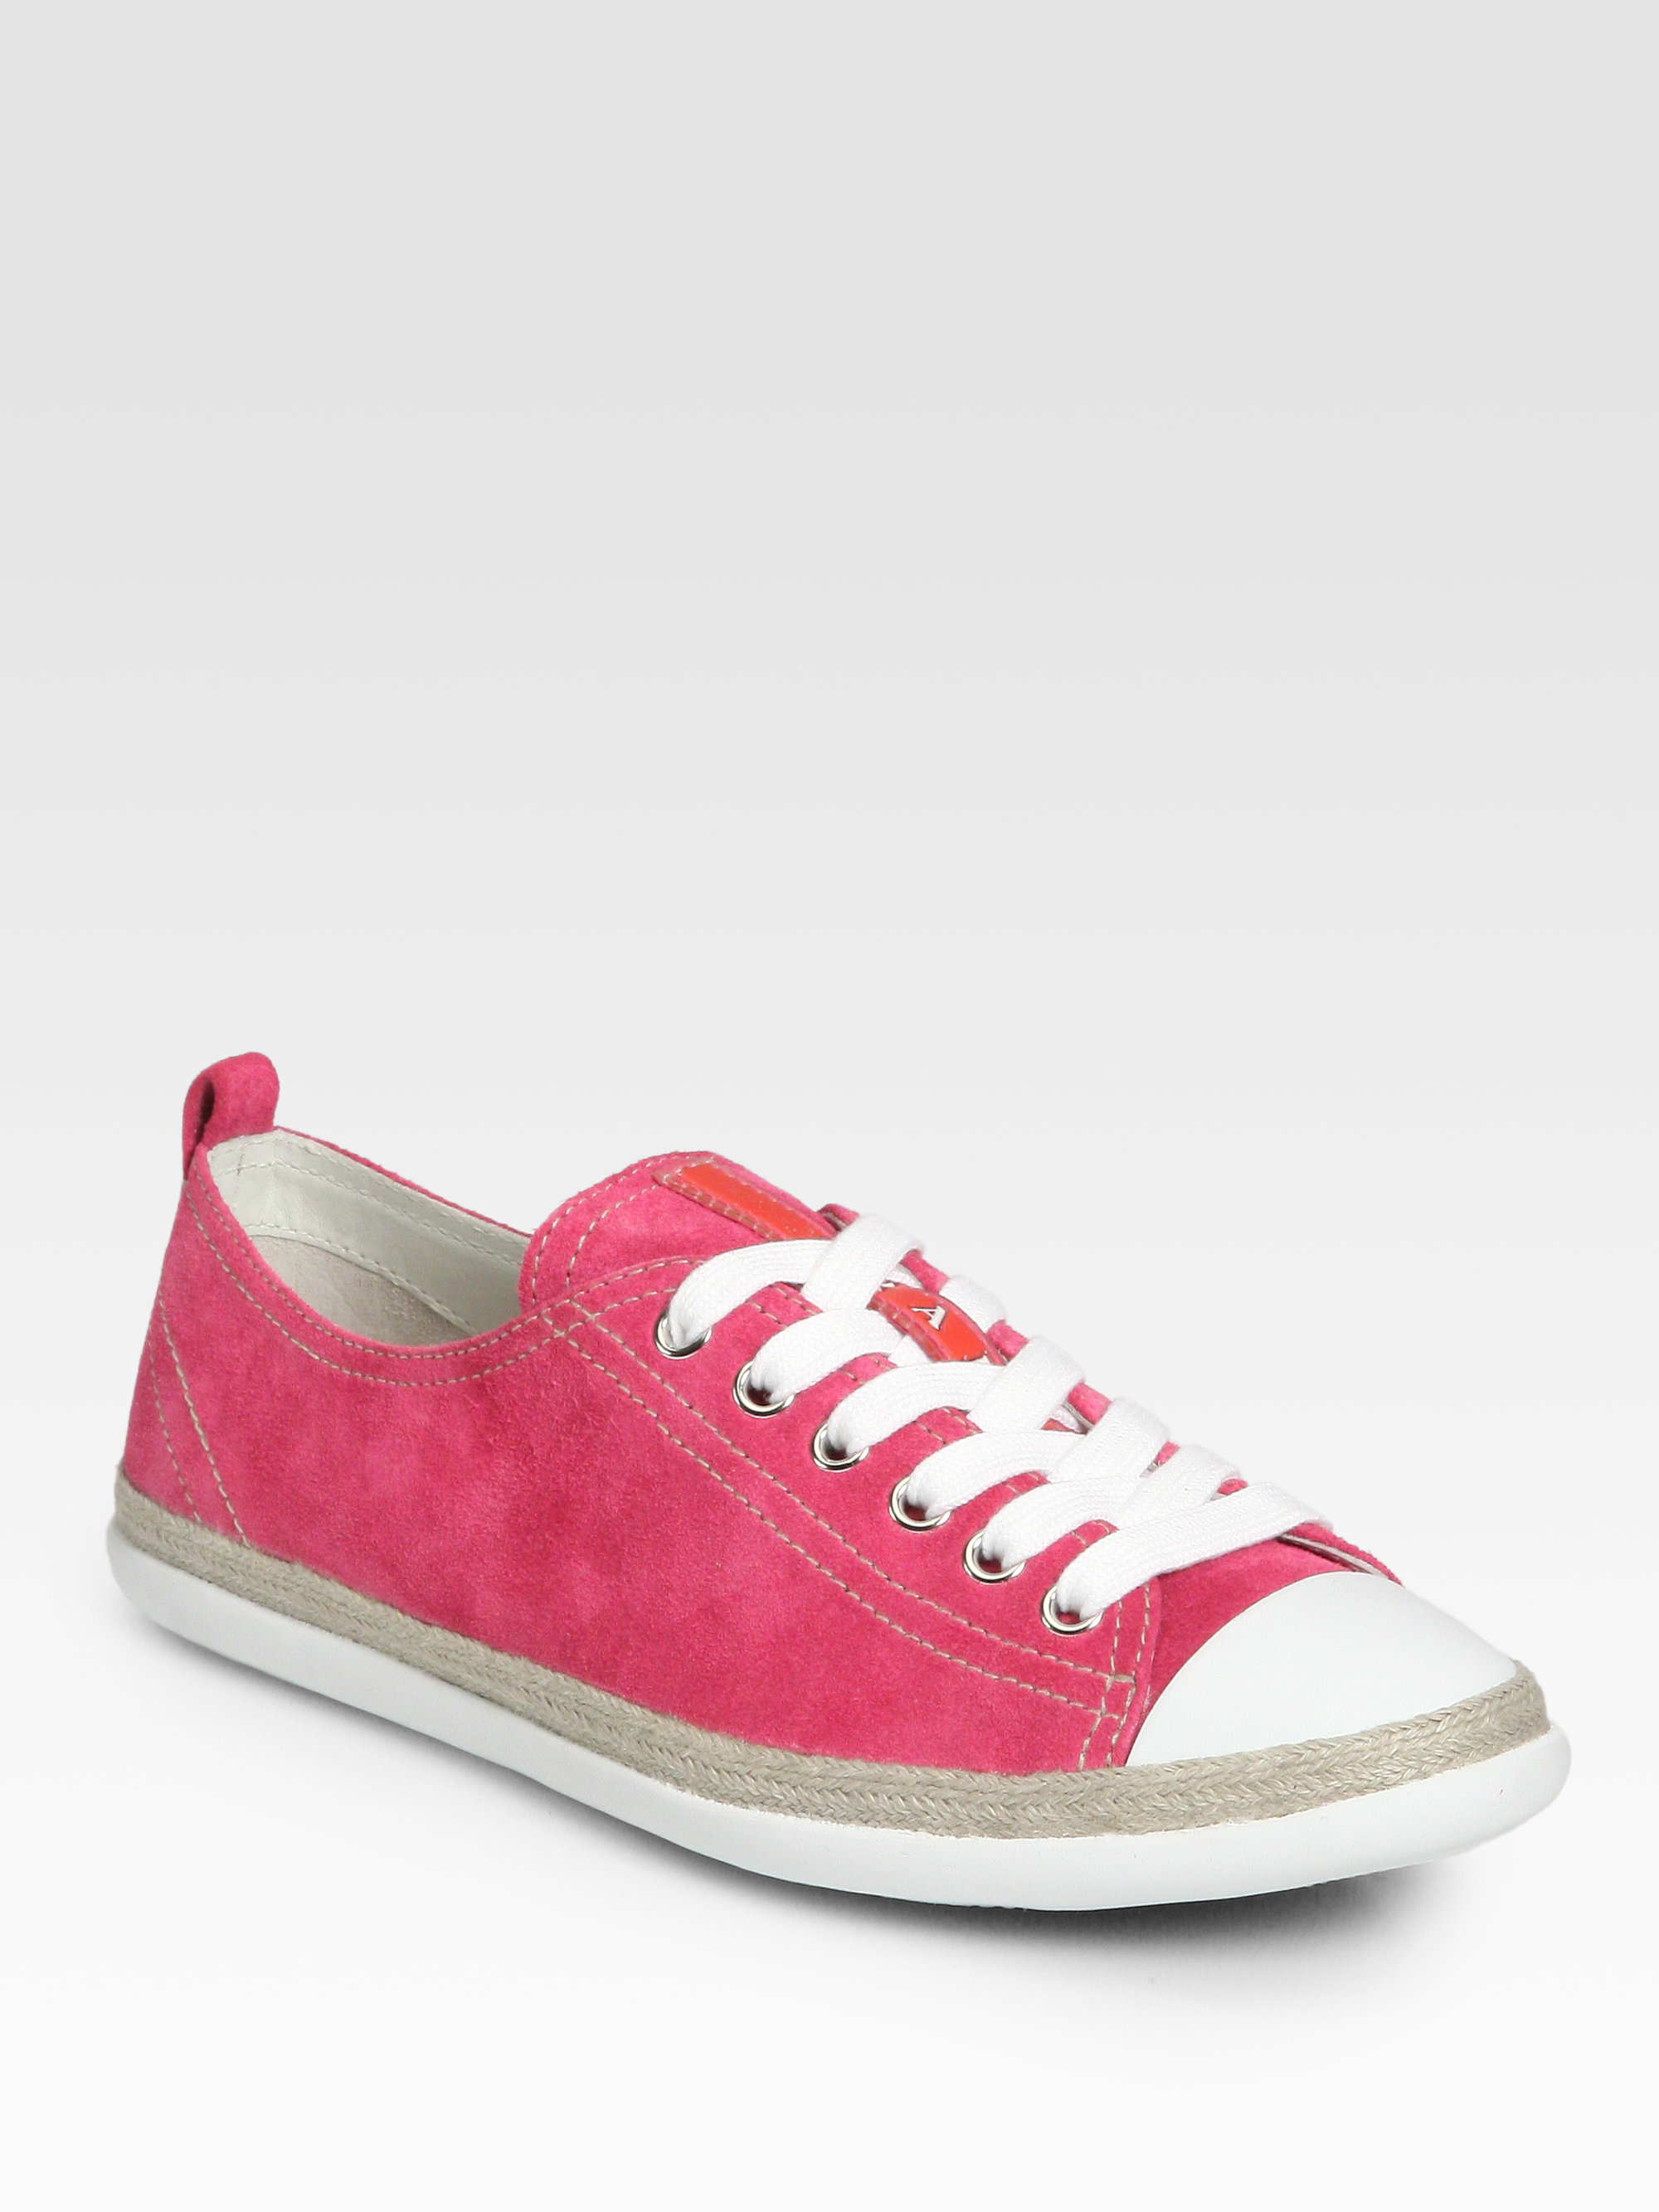 prada suede laceup sneakers in pink peonia pink lyst